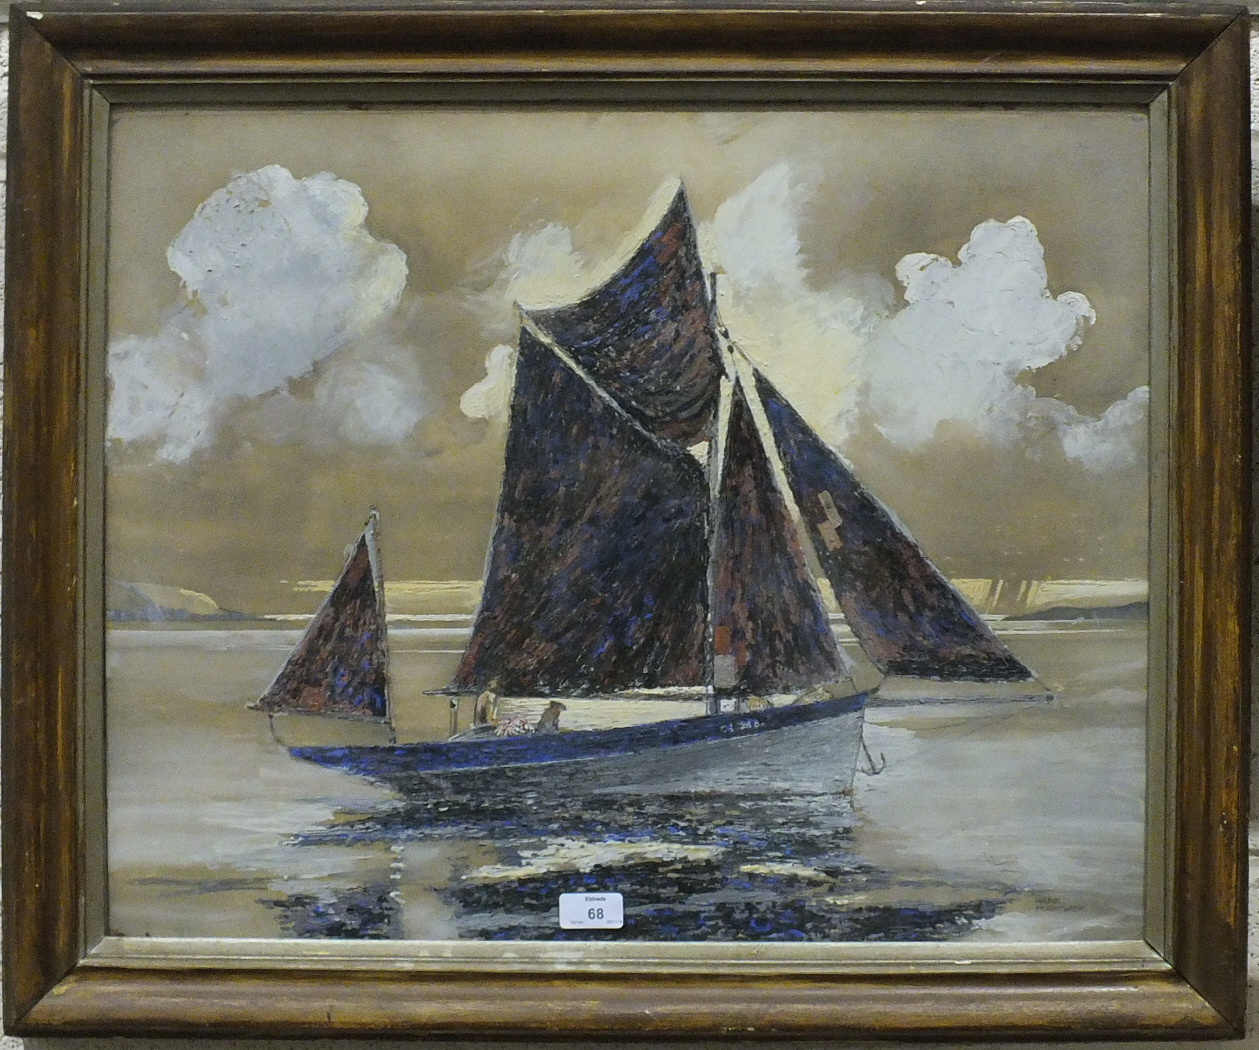 Lot 68 - •Harold Markwick (20th century) GUERNSEY CRABBER Signed acrylic on paper, 52 x 63cm.